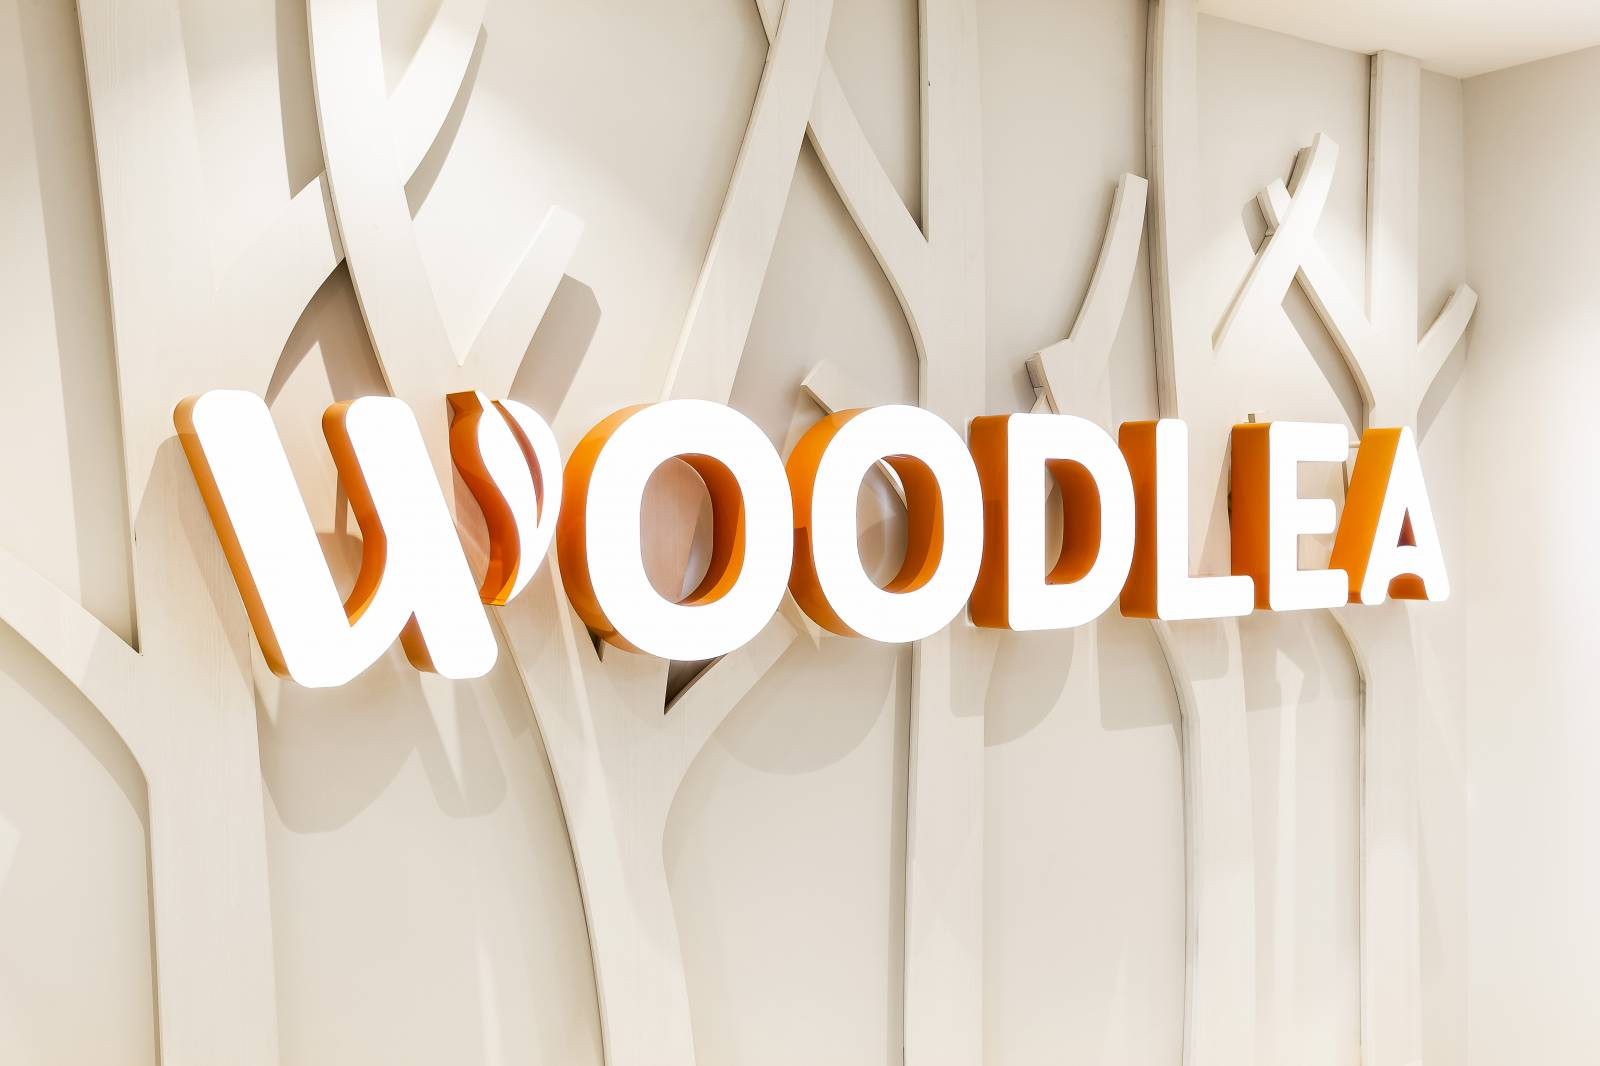 Woodlea Fabricated Lettering